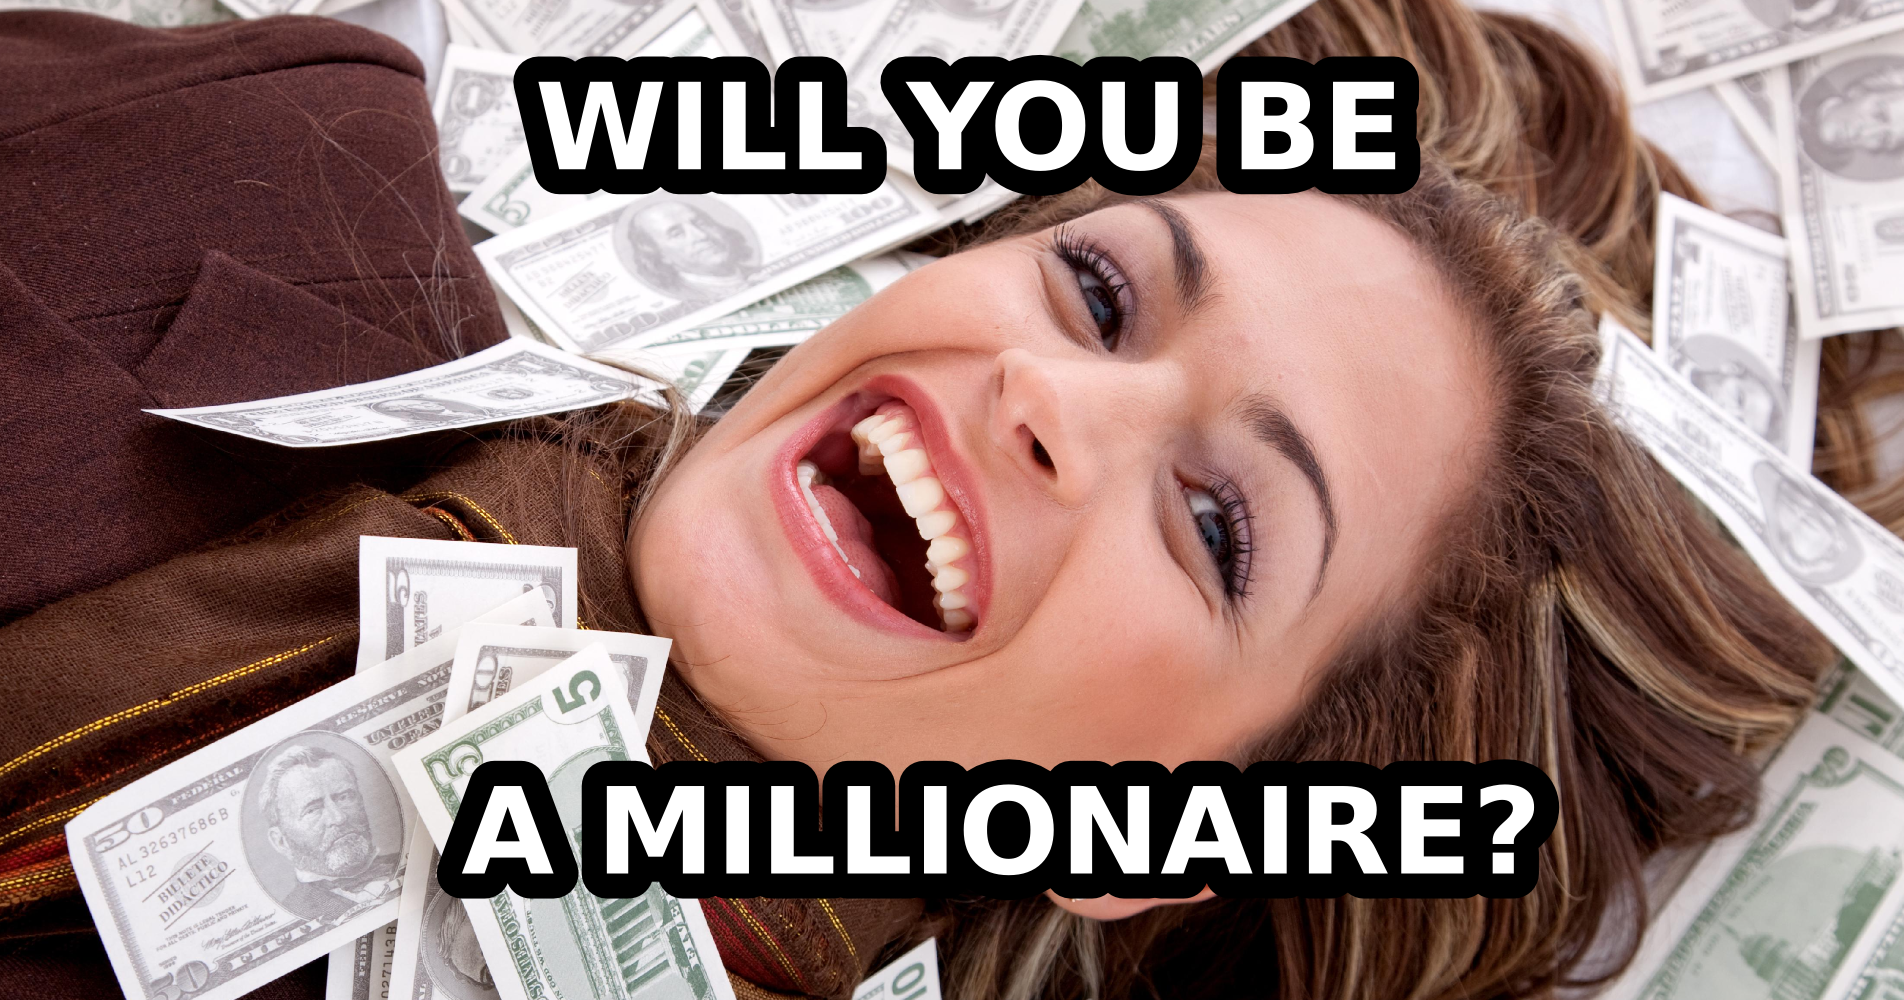 Do you have what it takes to be a MILLIONAIRE? Take the QUIZ.